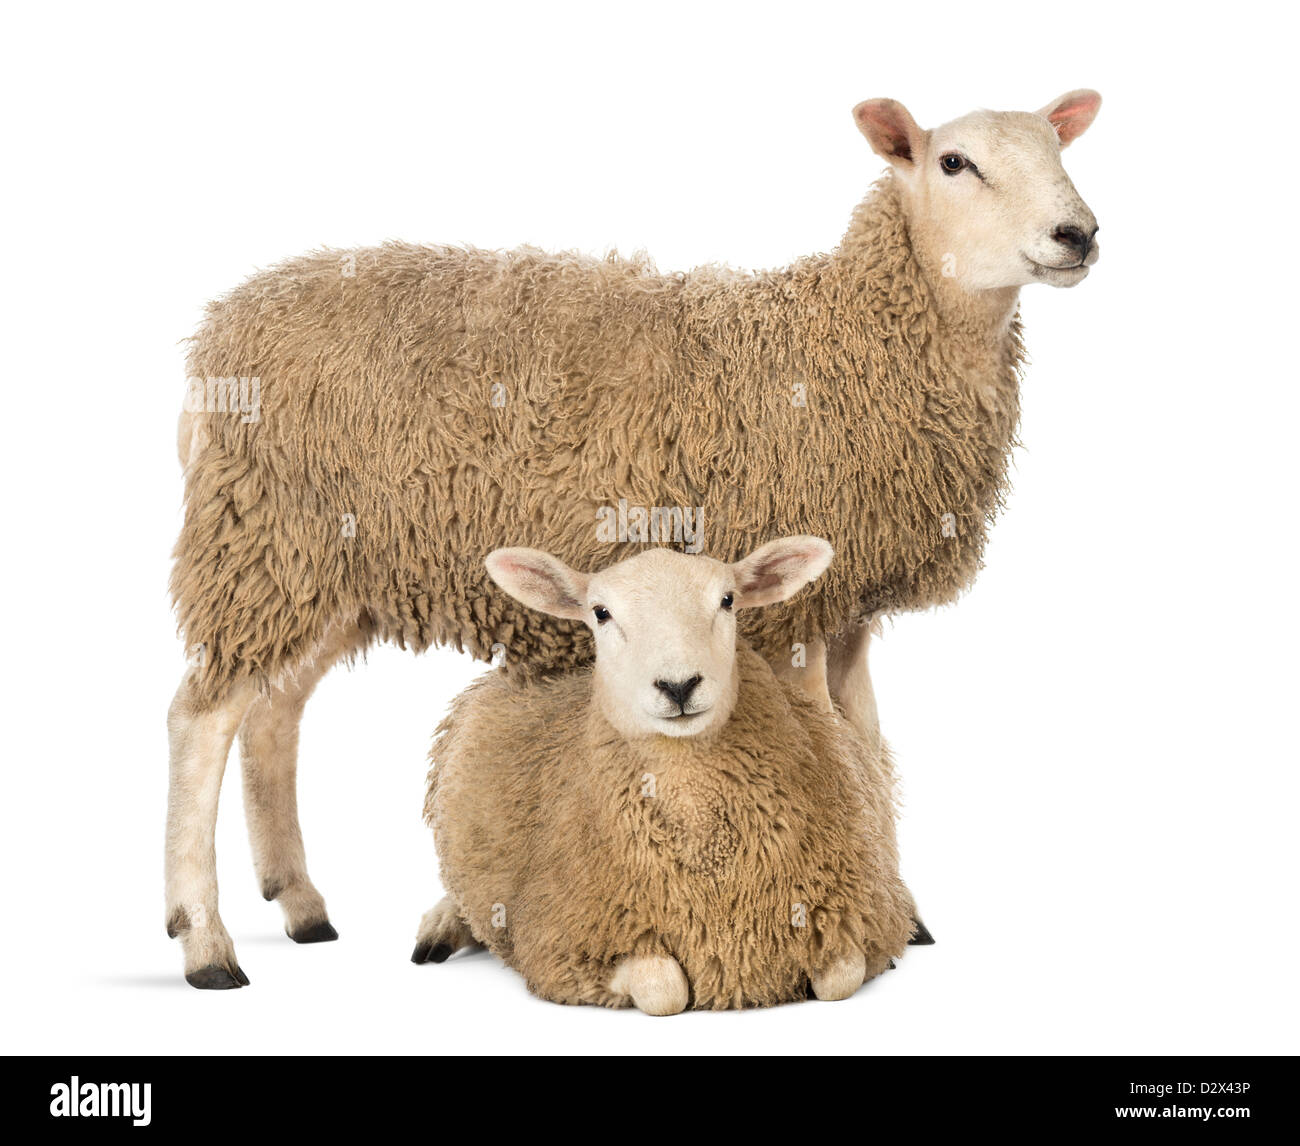 Sheep lying in front of a standing sheep in front of white background - Stock Image